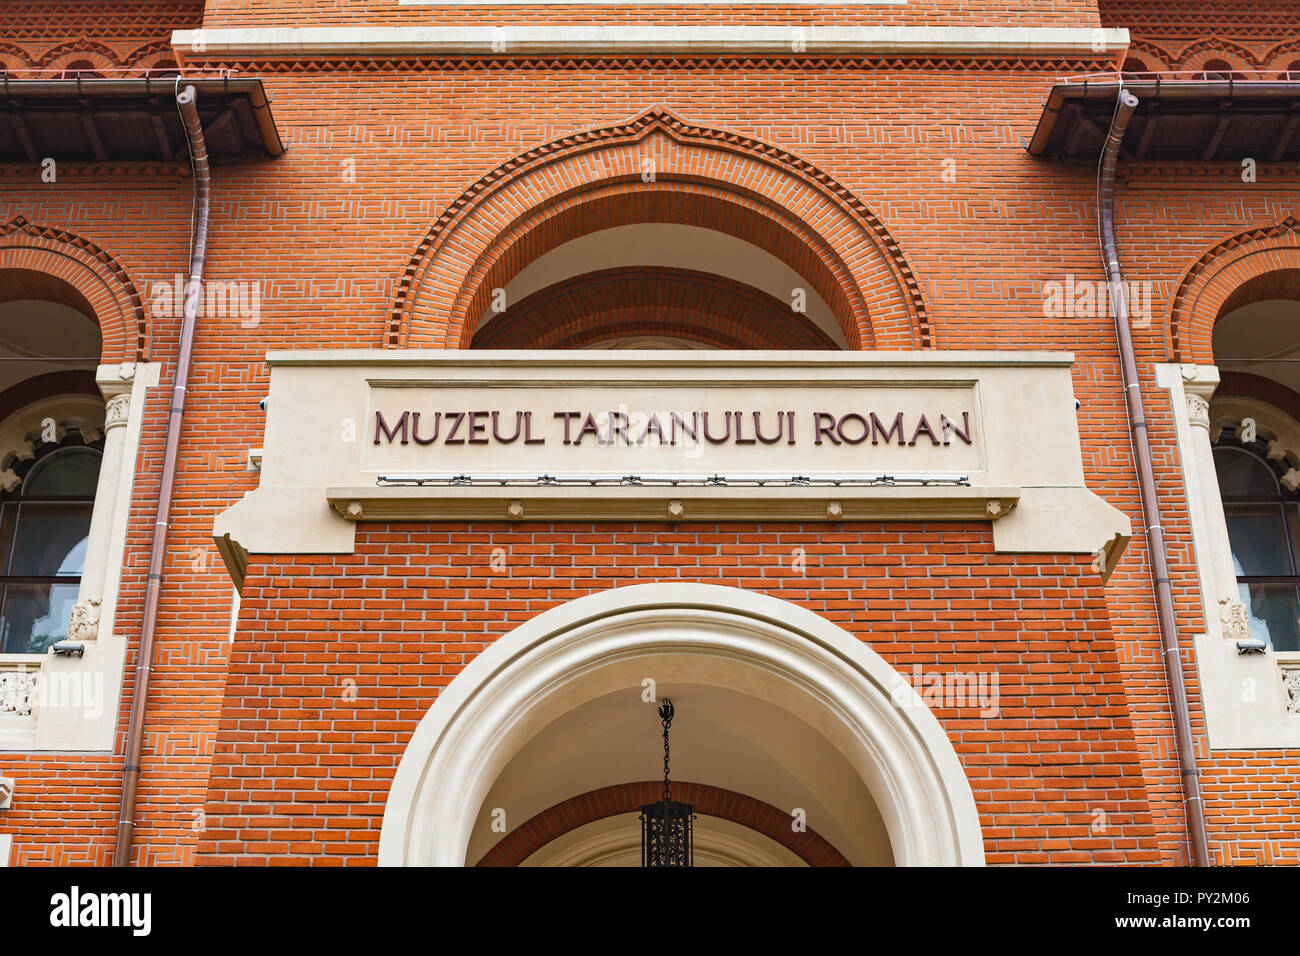 Picture of a Romanian Peasant Museum in Bucharest, capital of Romania - Stock Image